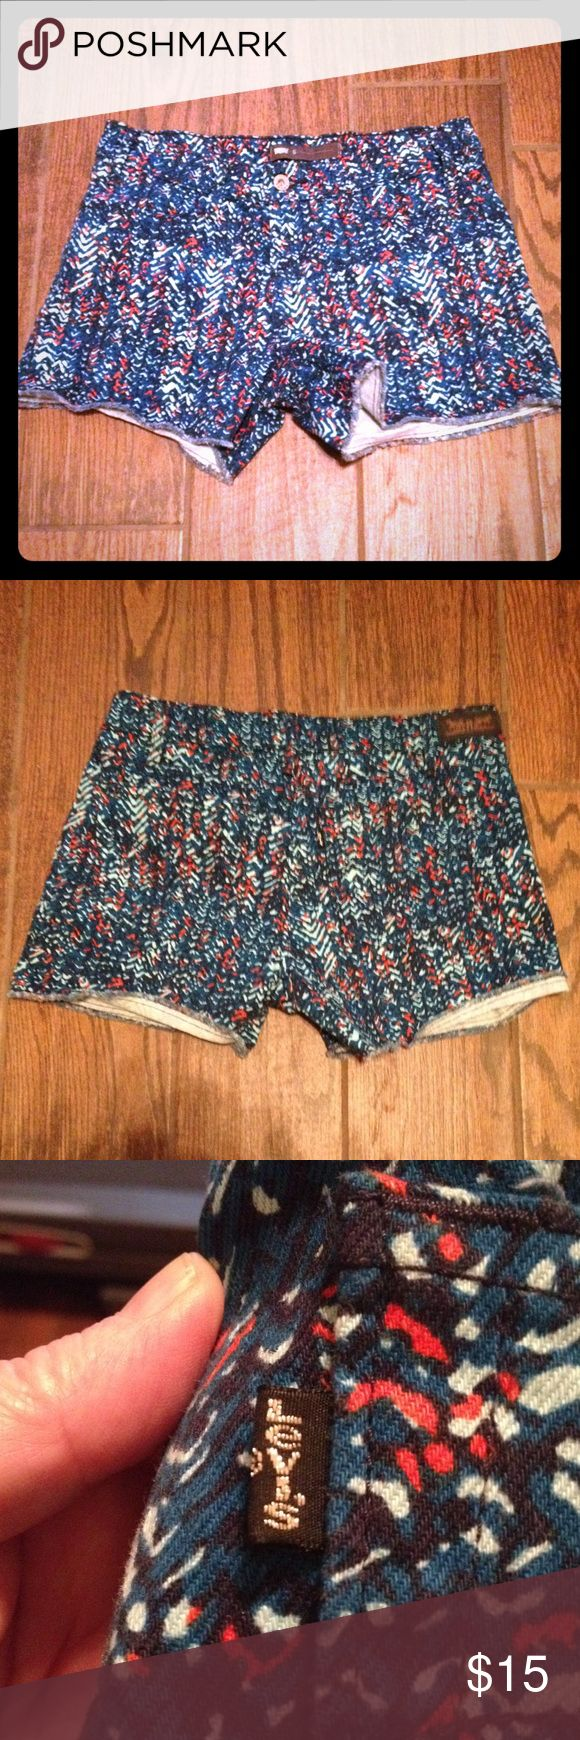 Levi Shorts 🚨SUPER SALE🚨 Blue, Black, White and Orange Patterned Levi Shorts 🚨SALE PRICE FIRM🚨 Levi's Shorts Jean Shorts